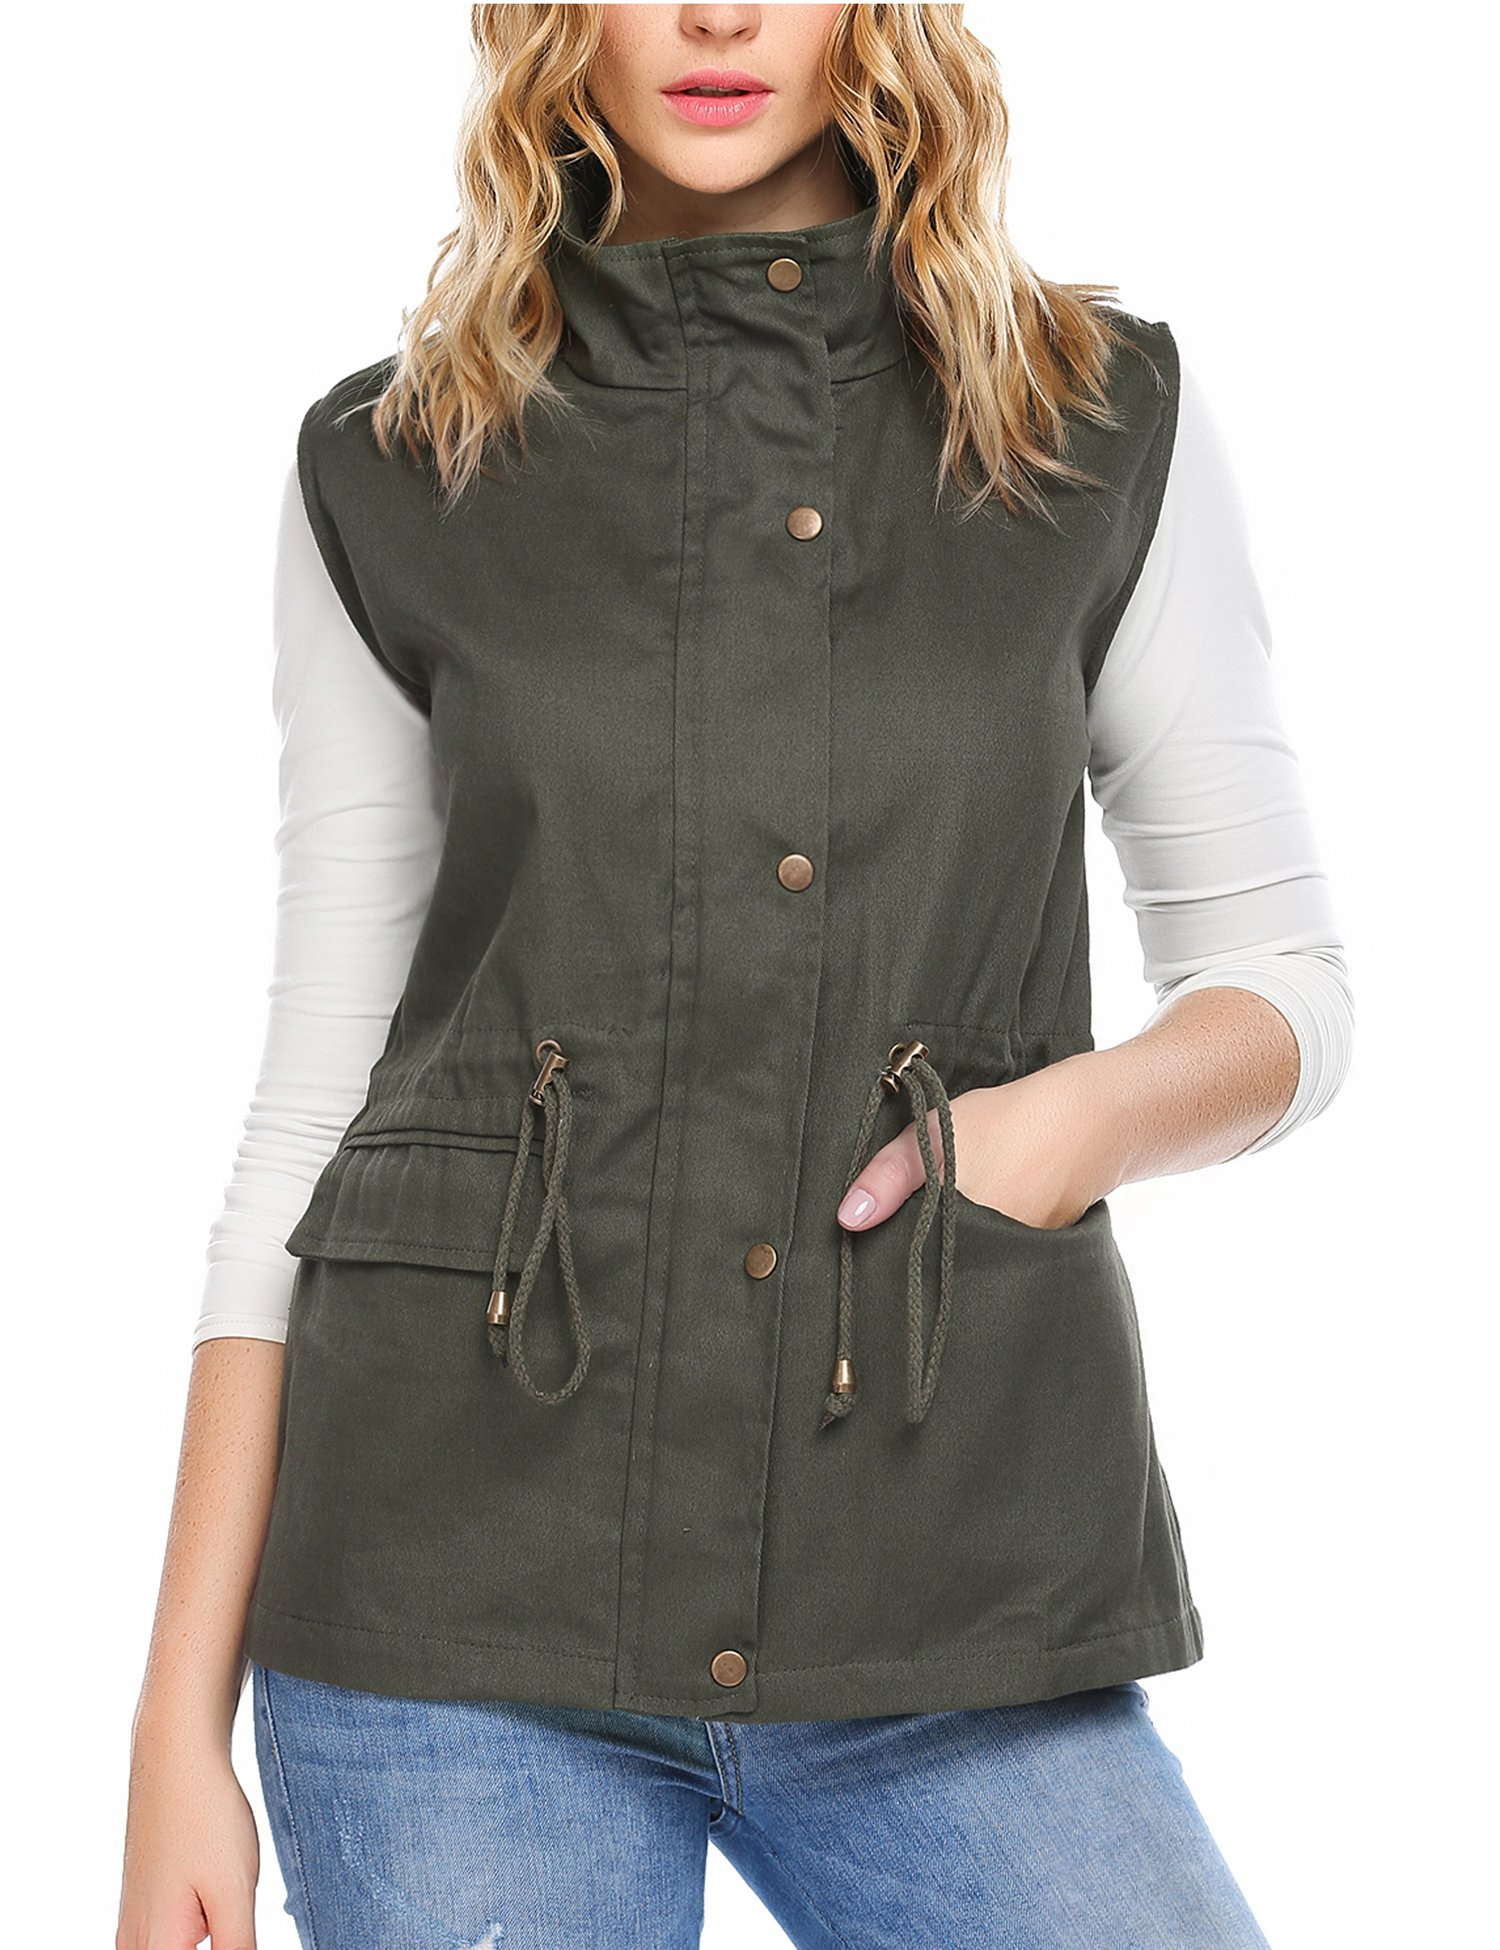 Beyove Women's Flap Pocket Sleeveless Anorak Military Style Vest, Army Green, M